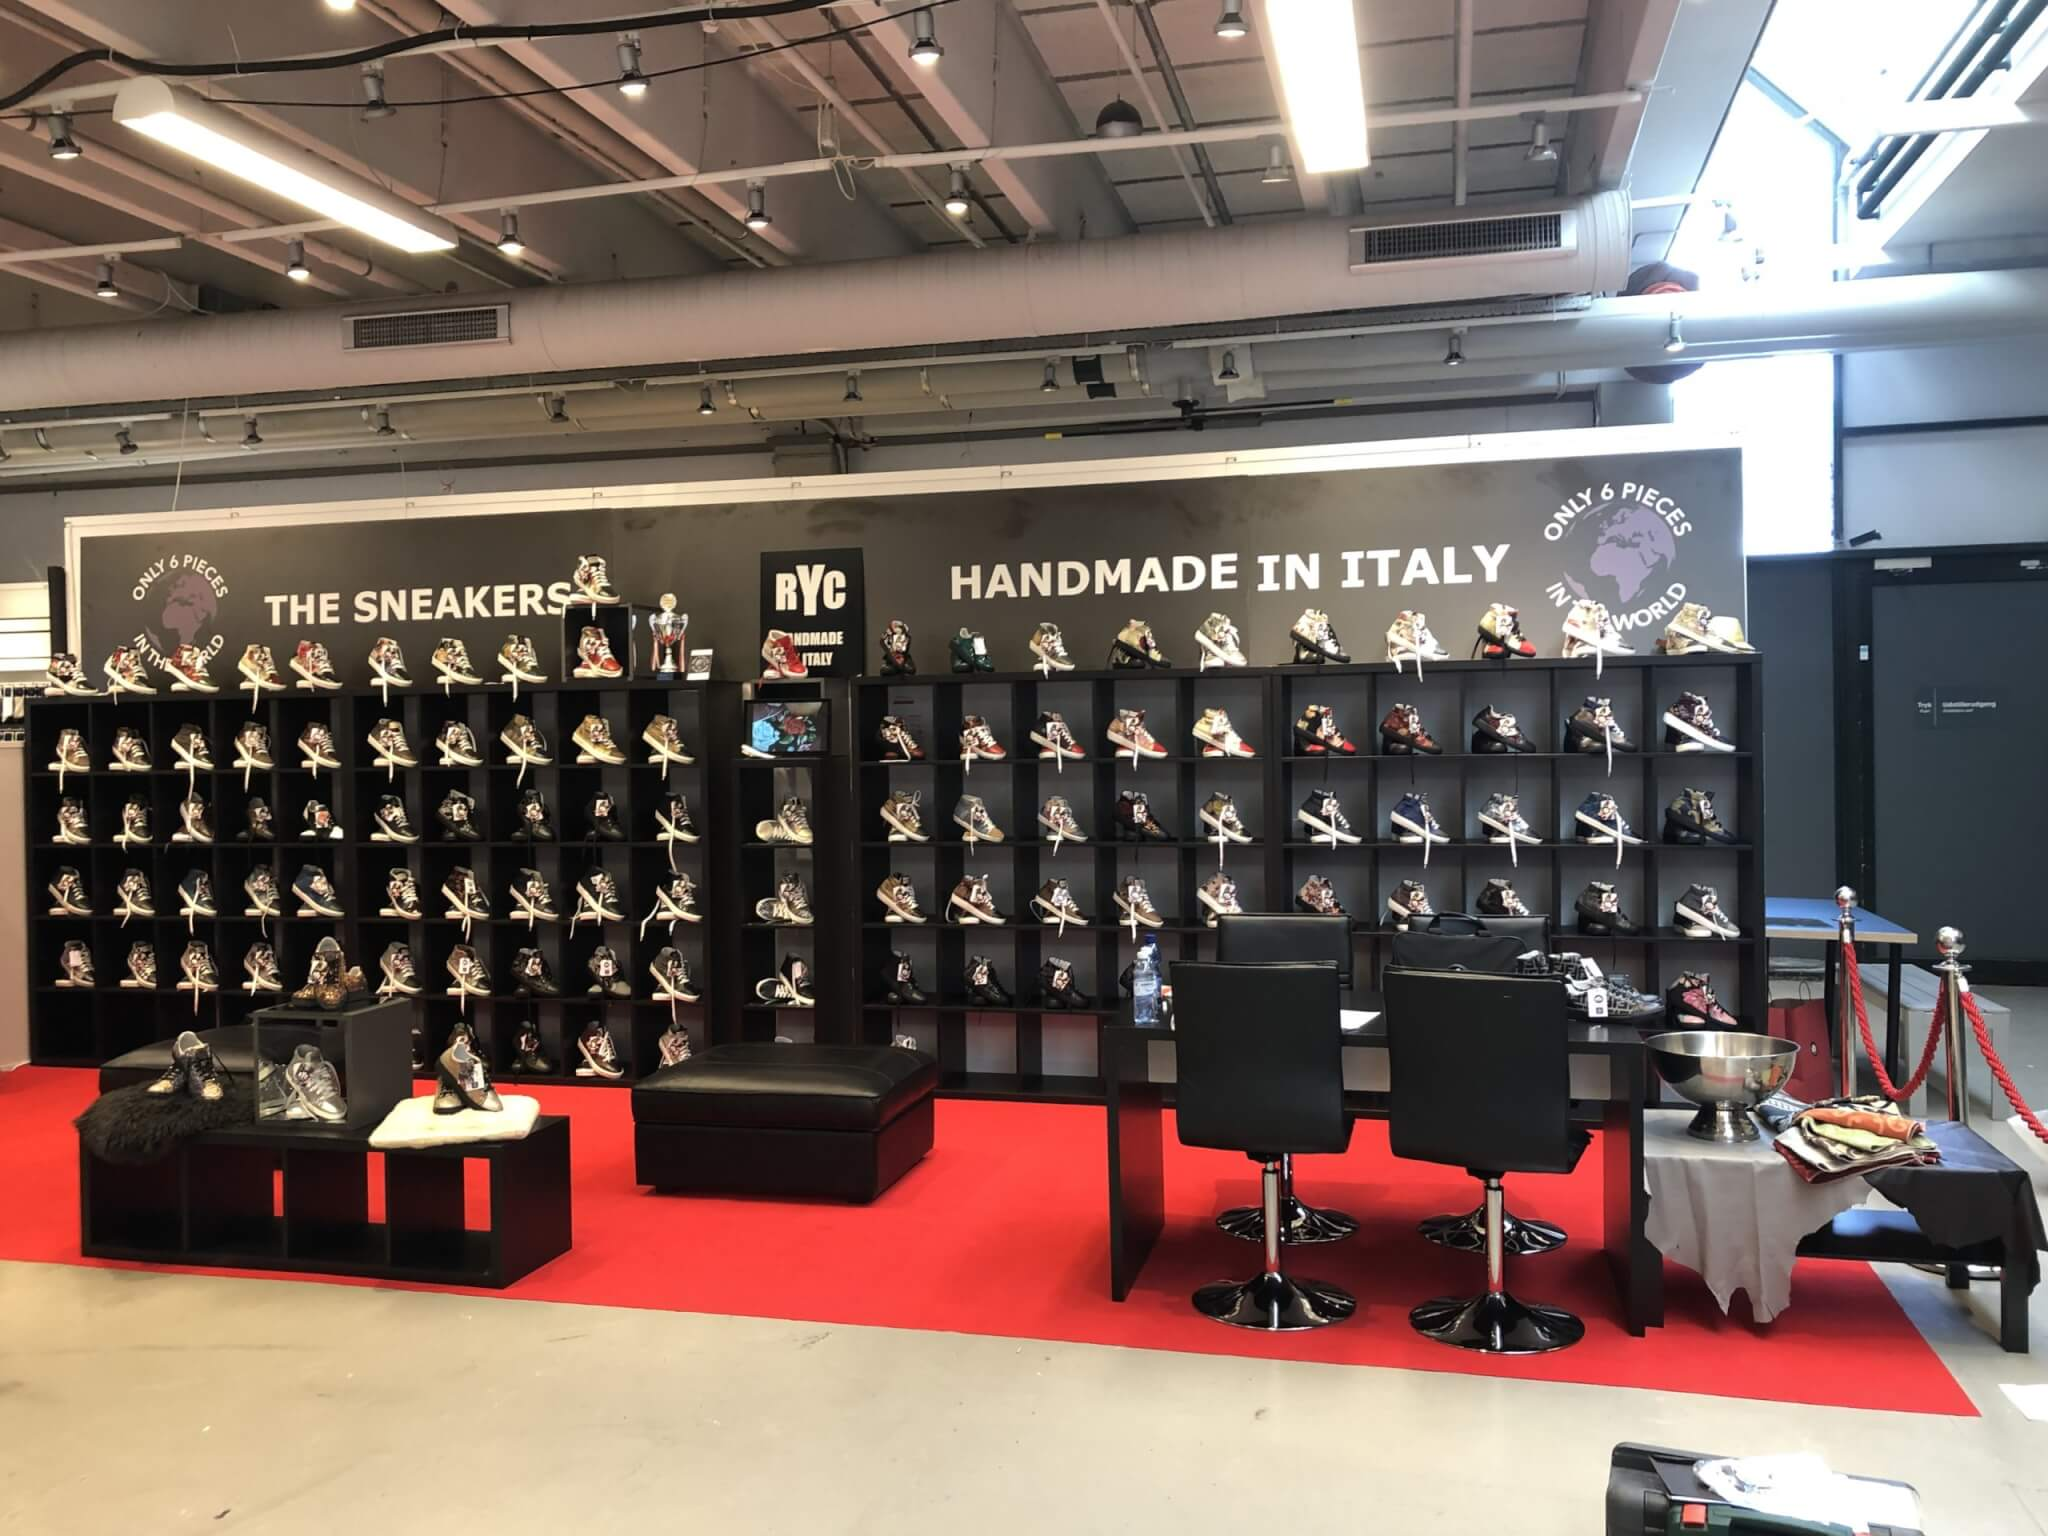 CIFF 2019 RYC & RICH-YCLED Handmade Shoes From Italy